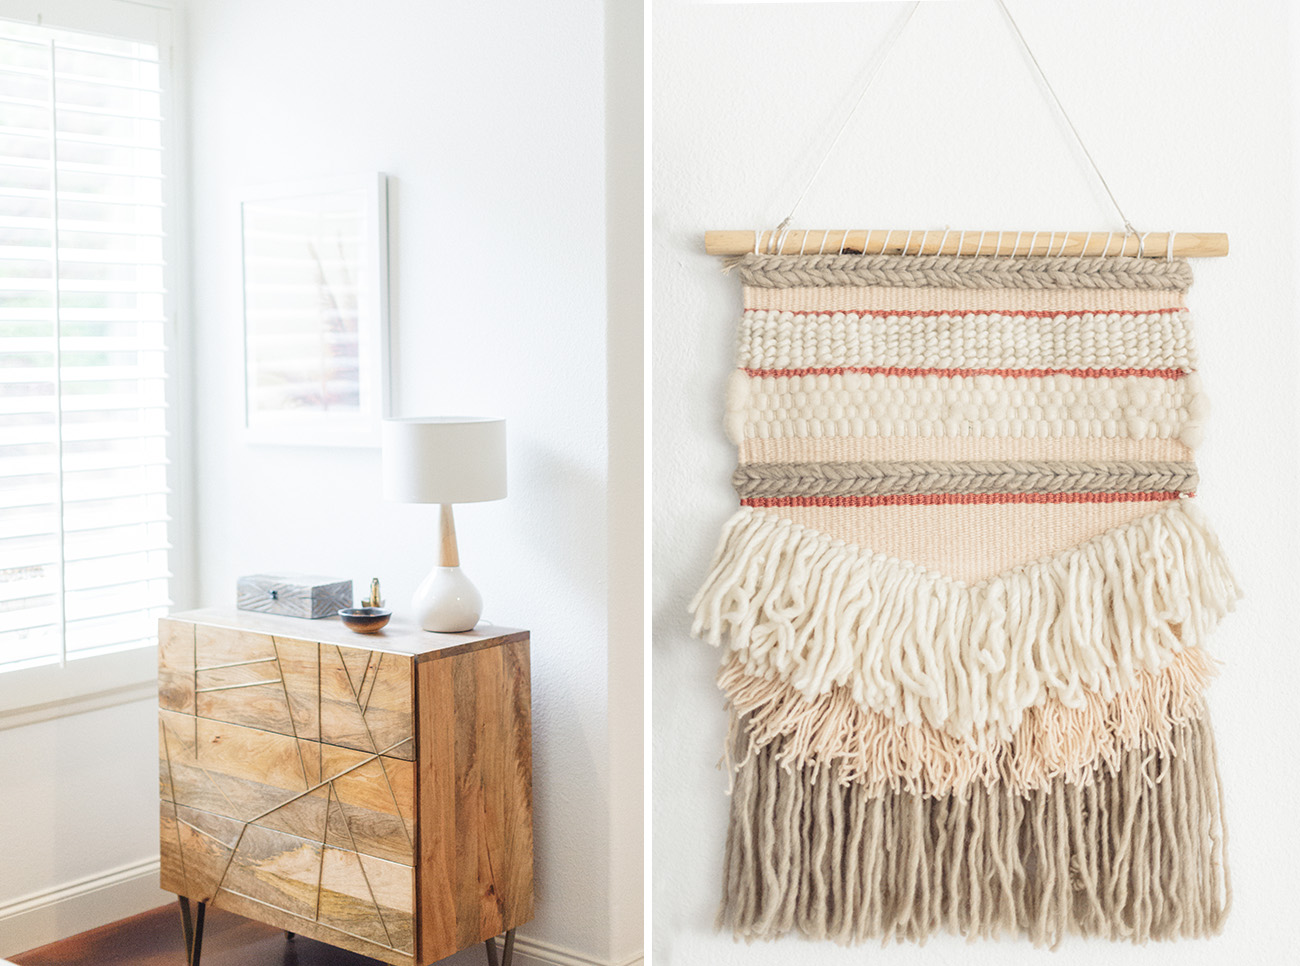 Cali Beachy Boho Bedroom